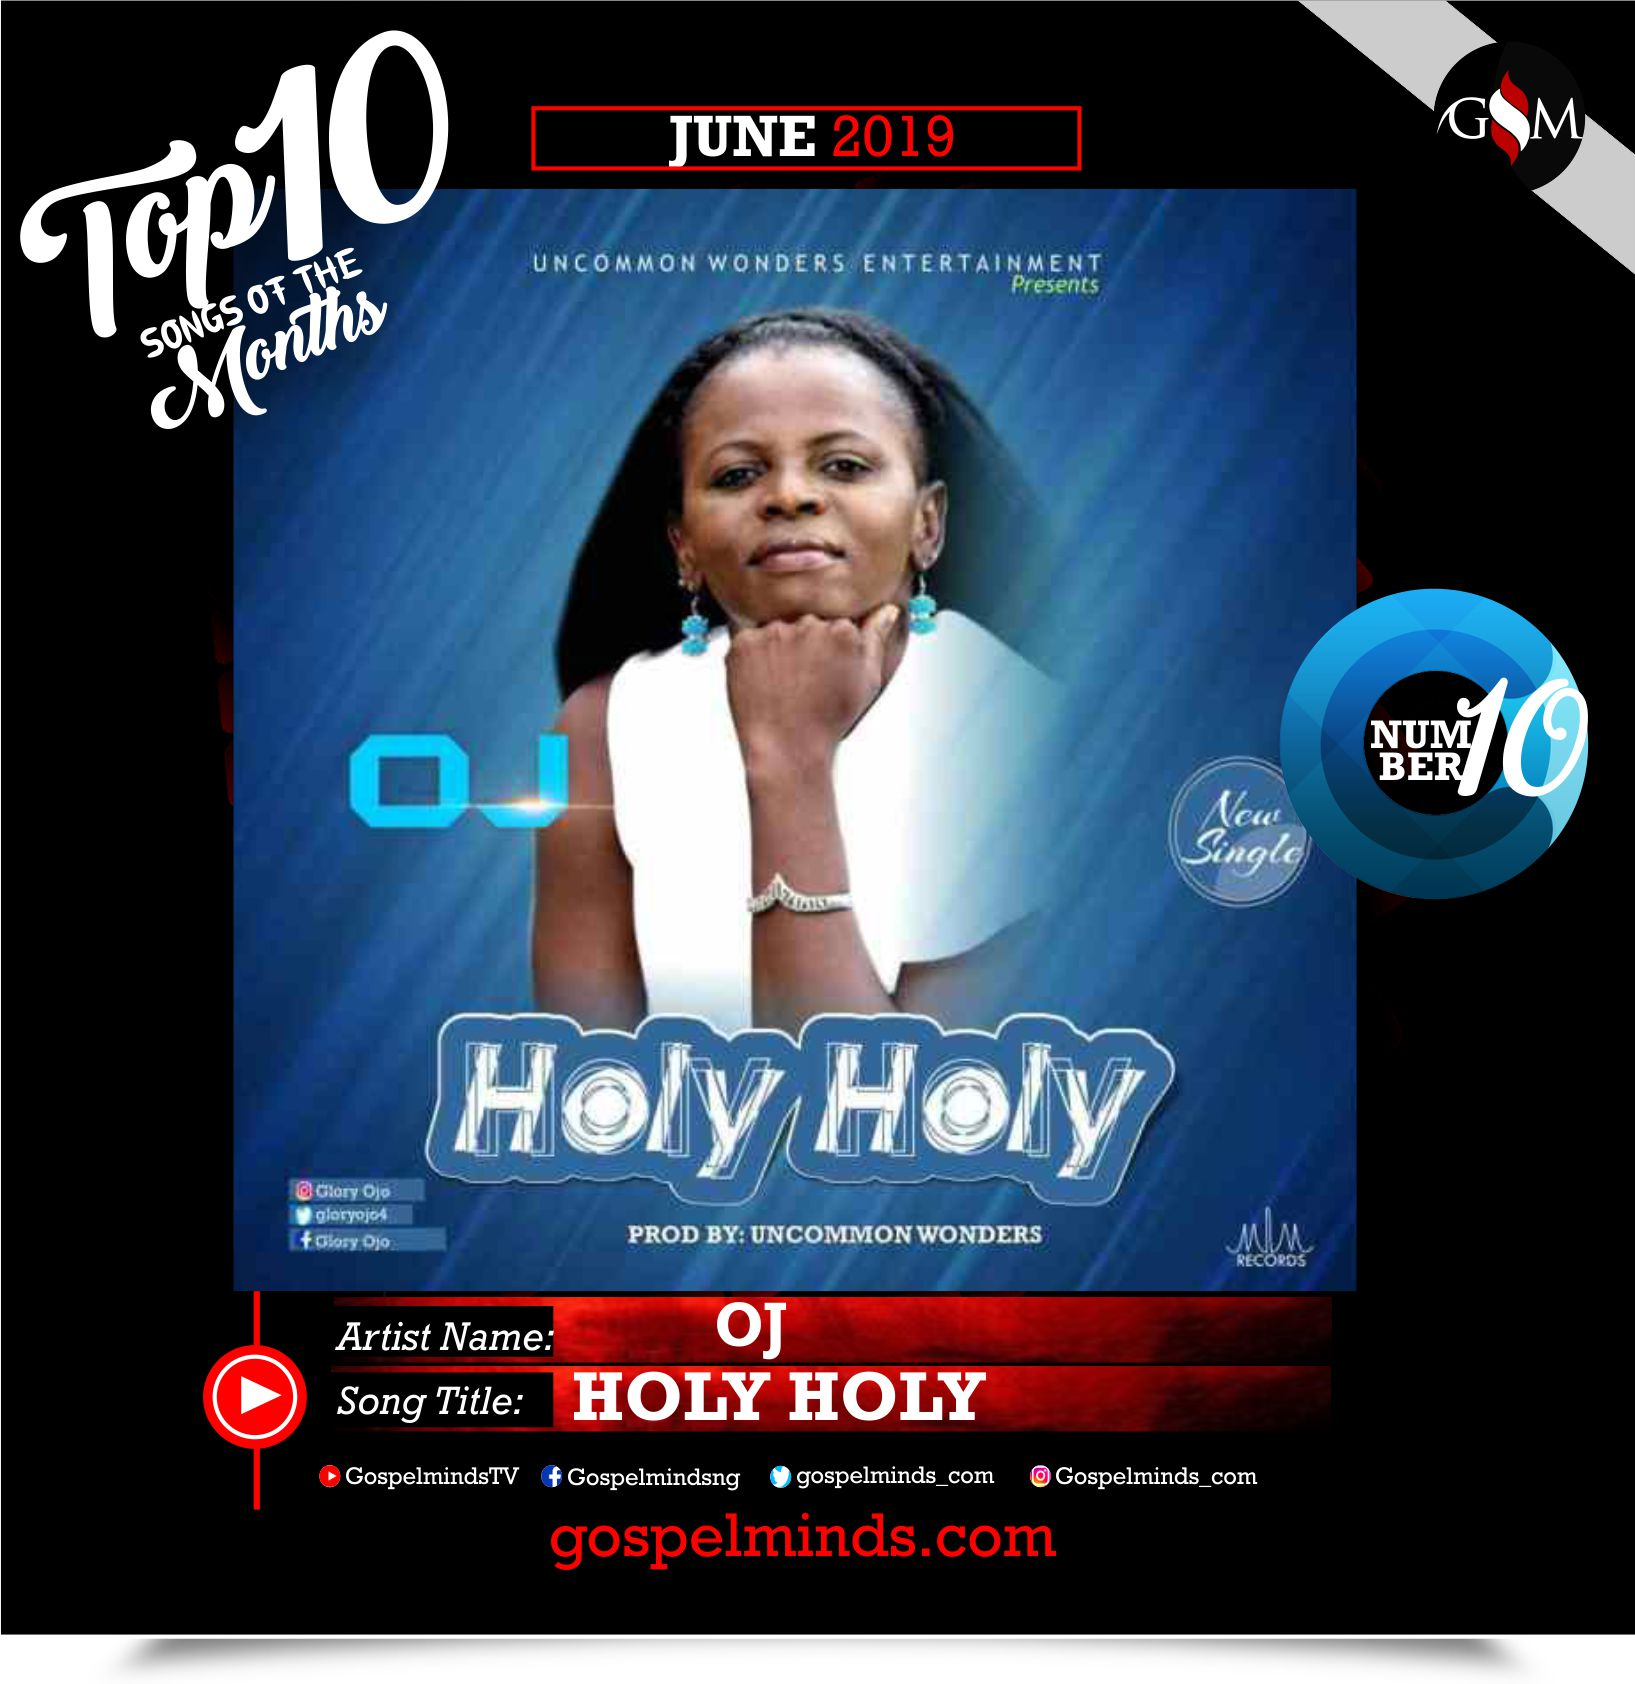 Top 10 Gospel Songs of The Month - June 2019 GospelMinds Ent. (Oj - Holy Holy)